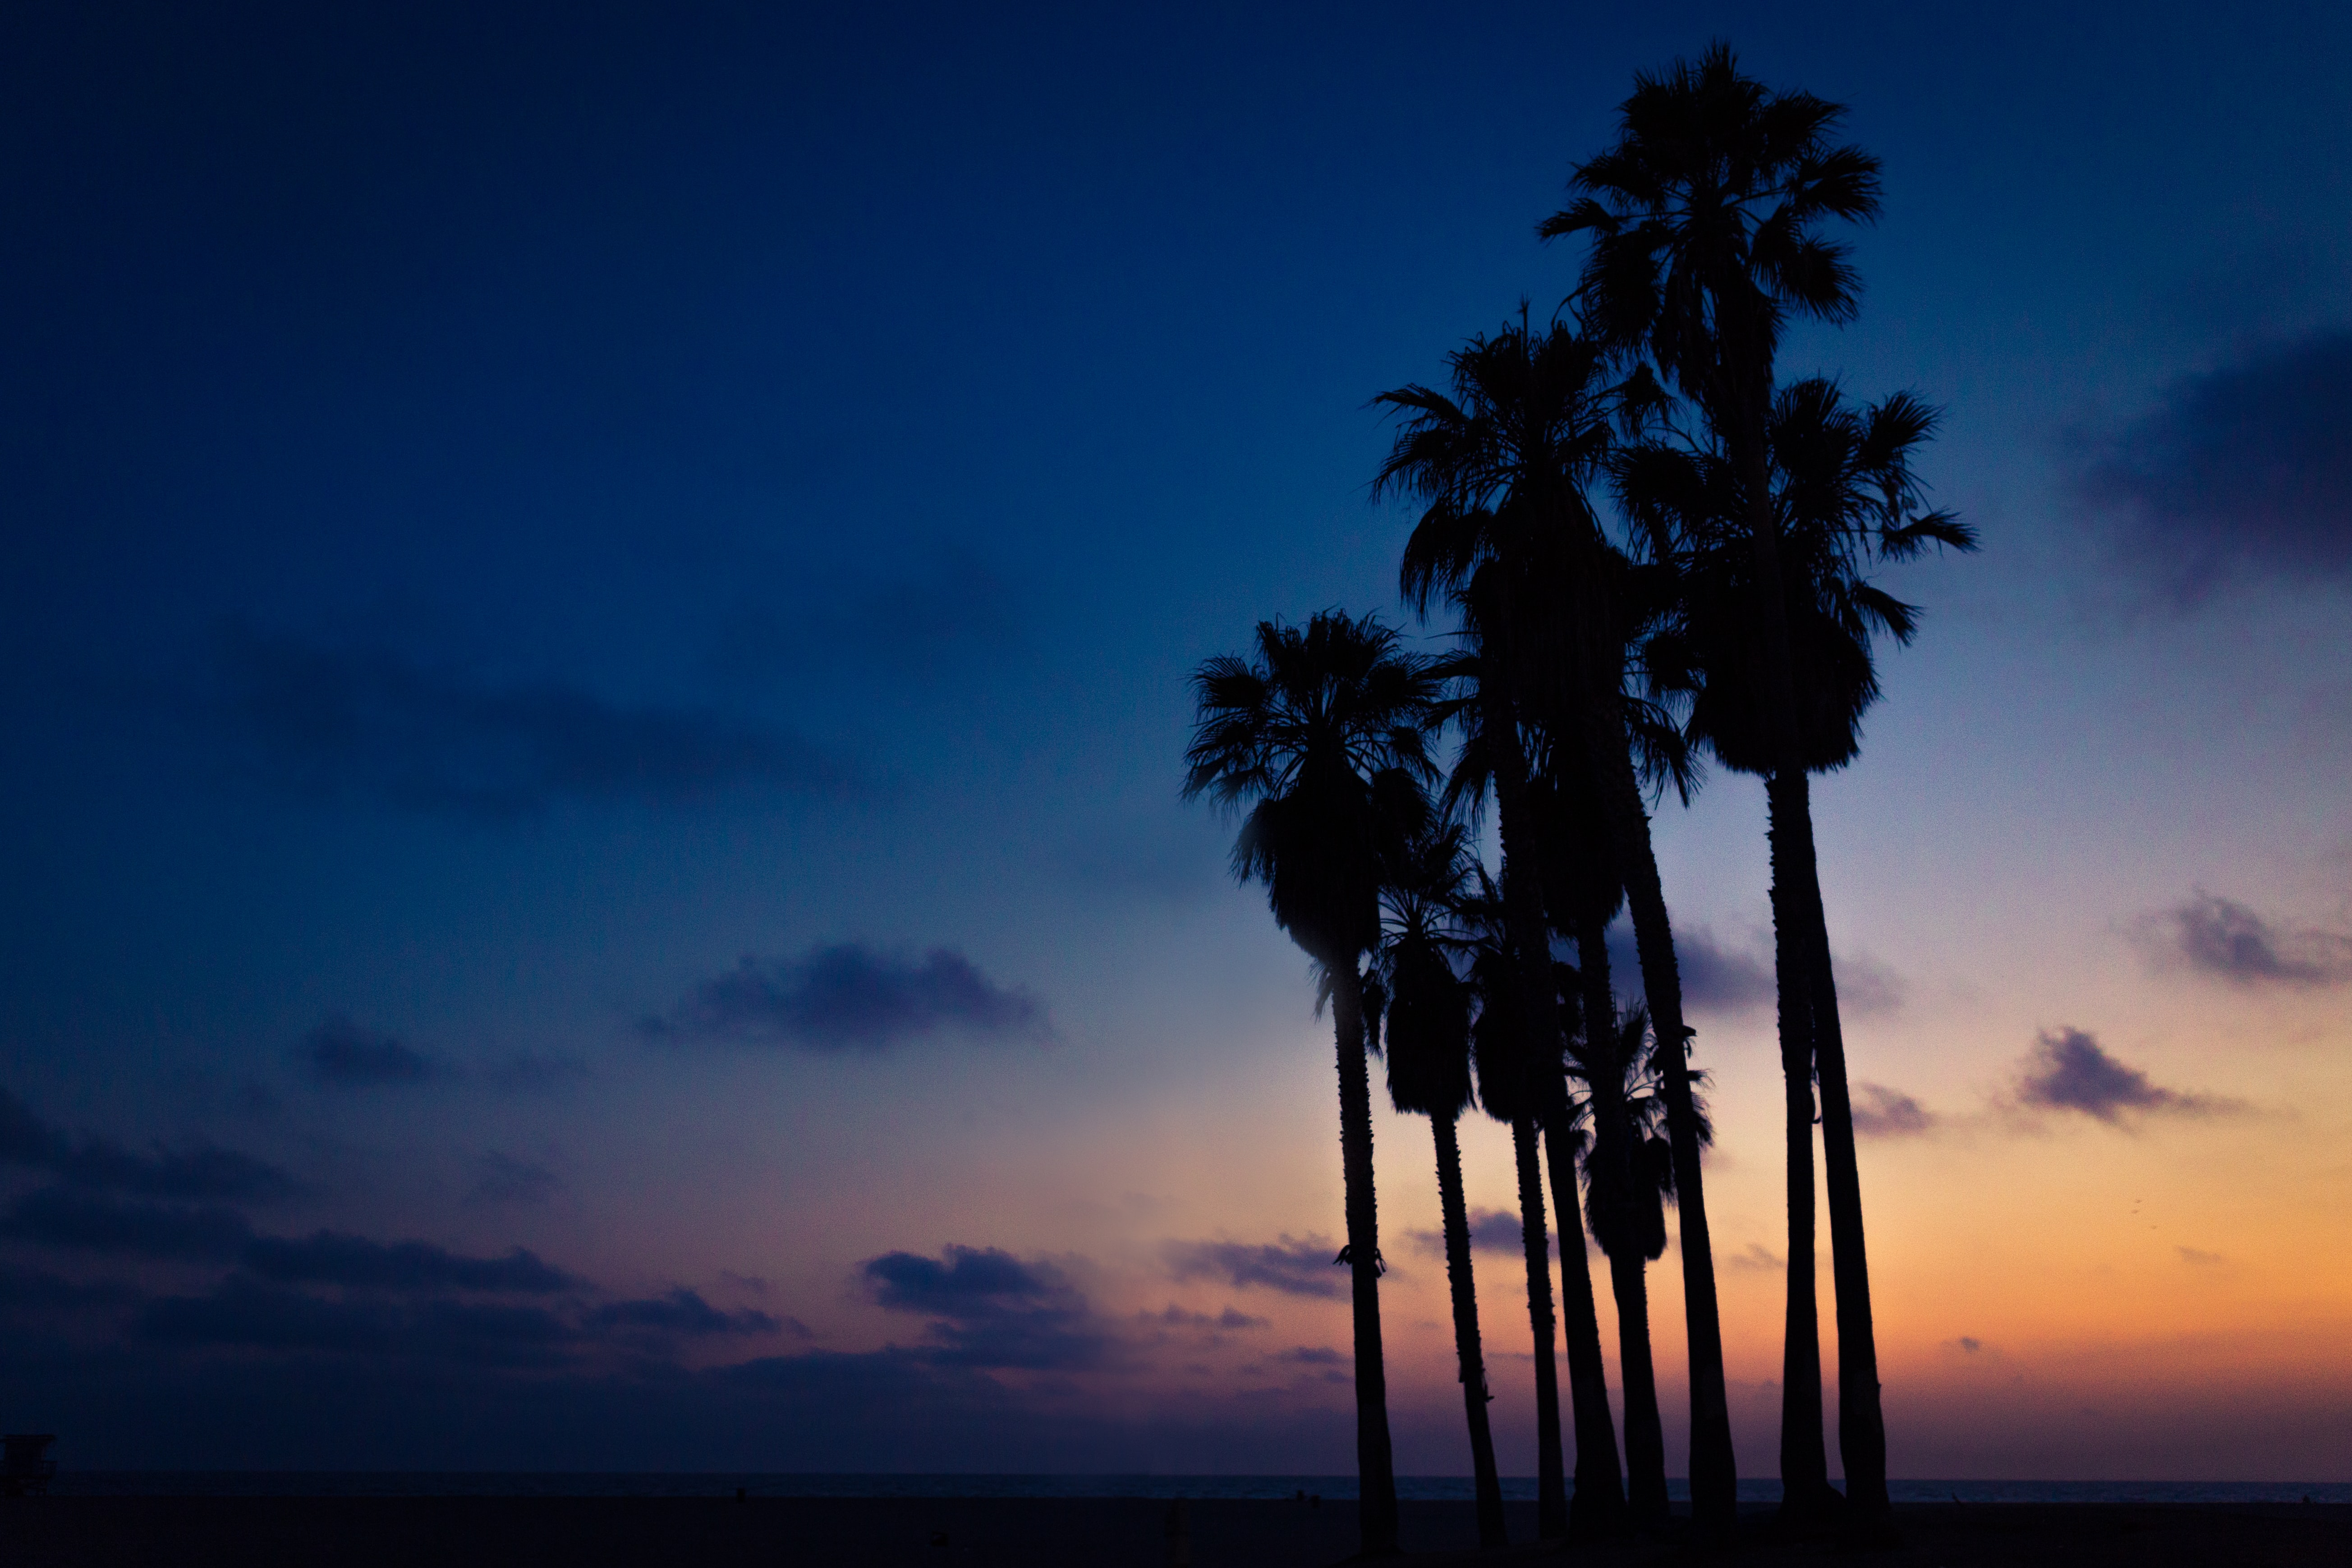 Silhouette of palm trees during sunset in Venice Beach